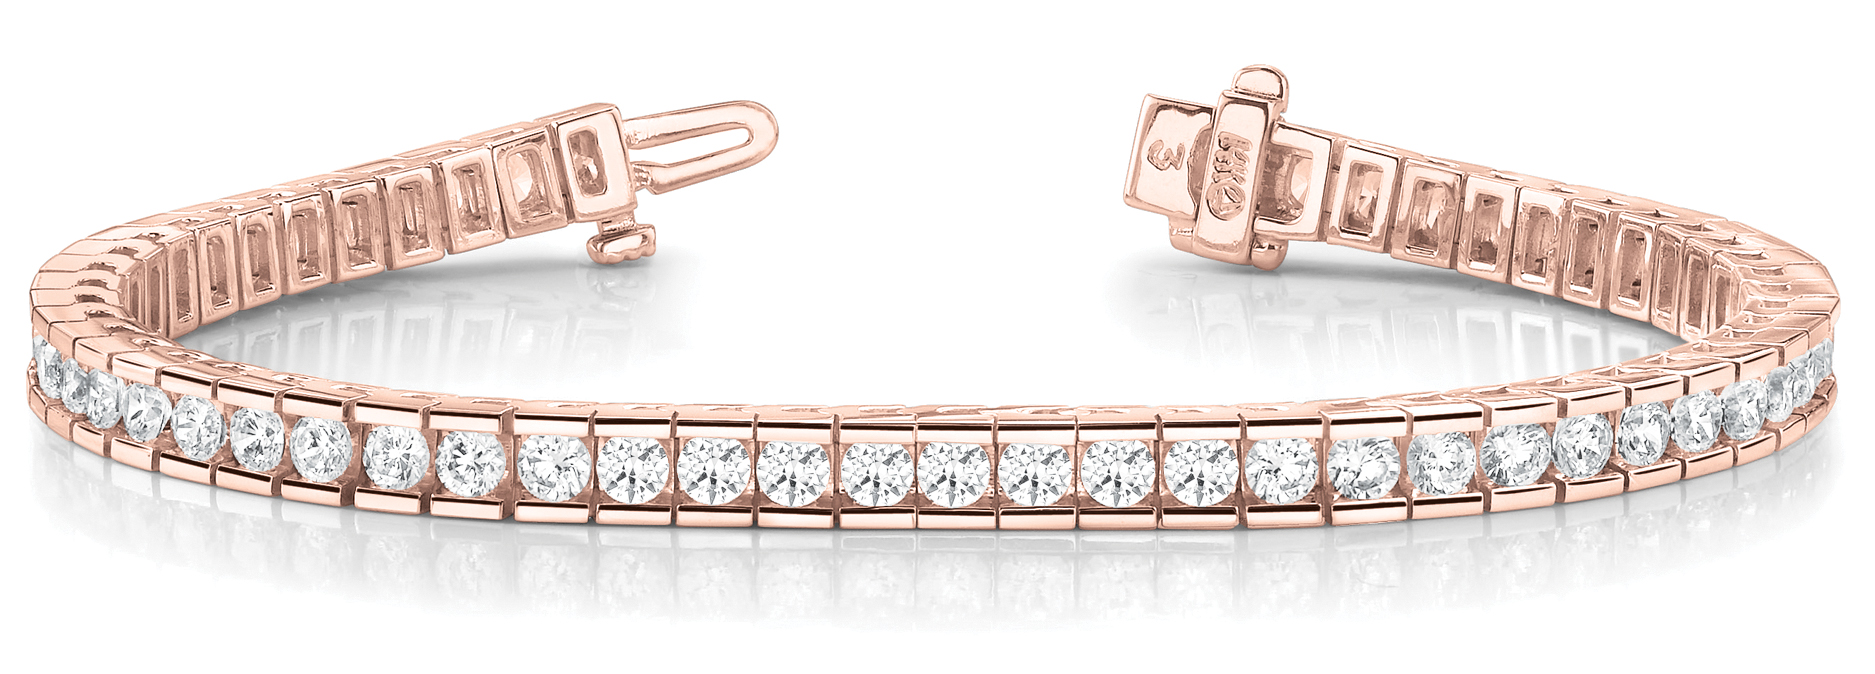 2.5 Carat Round Diamond Channel Bracelet Rose Gold